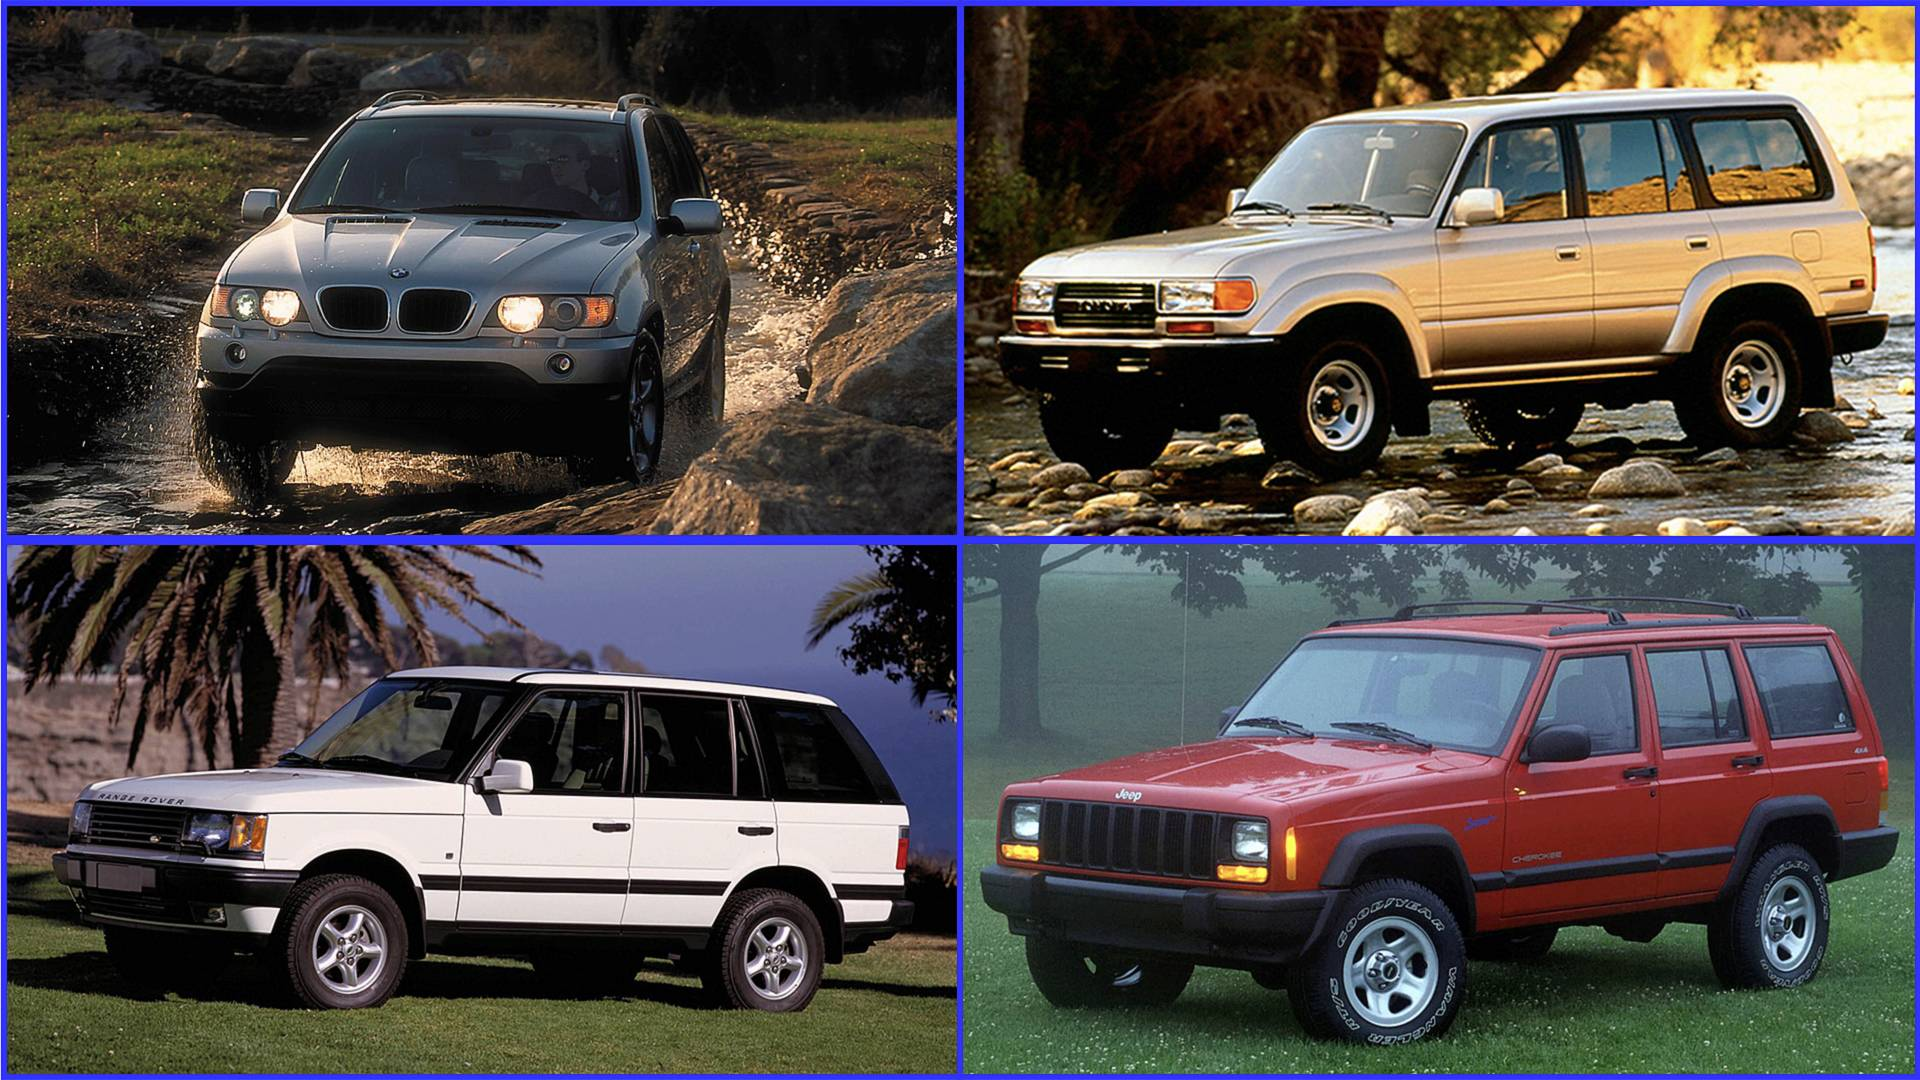 10 Suvs That Cost Less Than 5k But Are Still Lots Of Fun